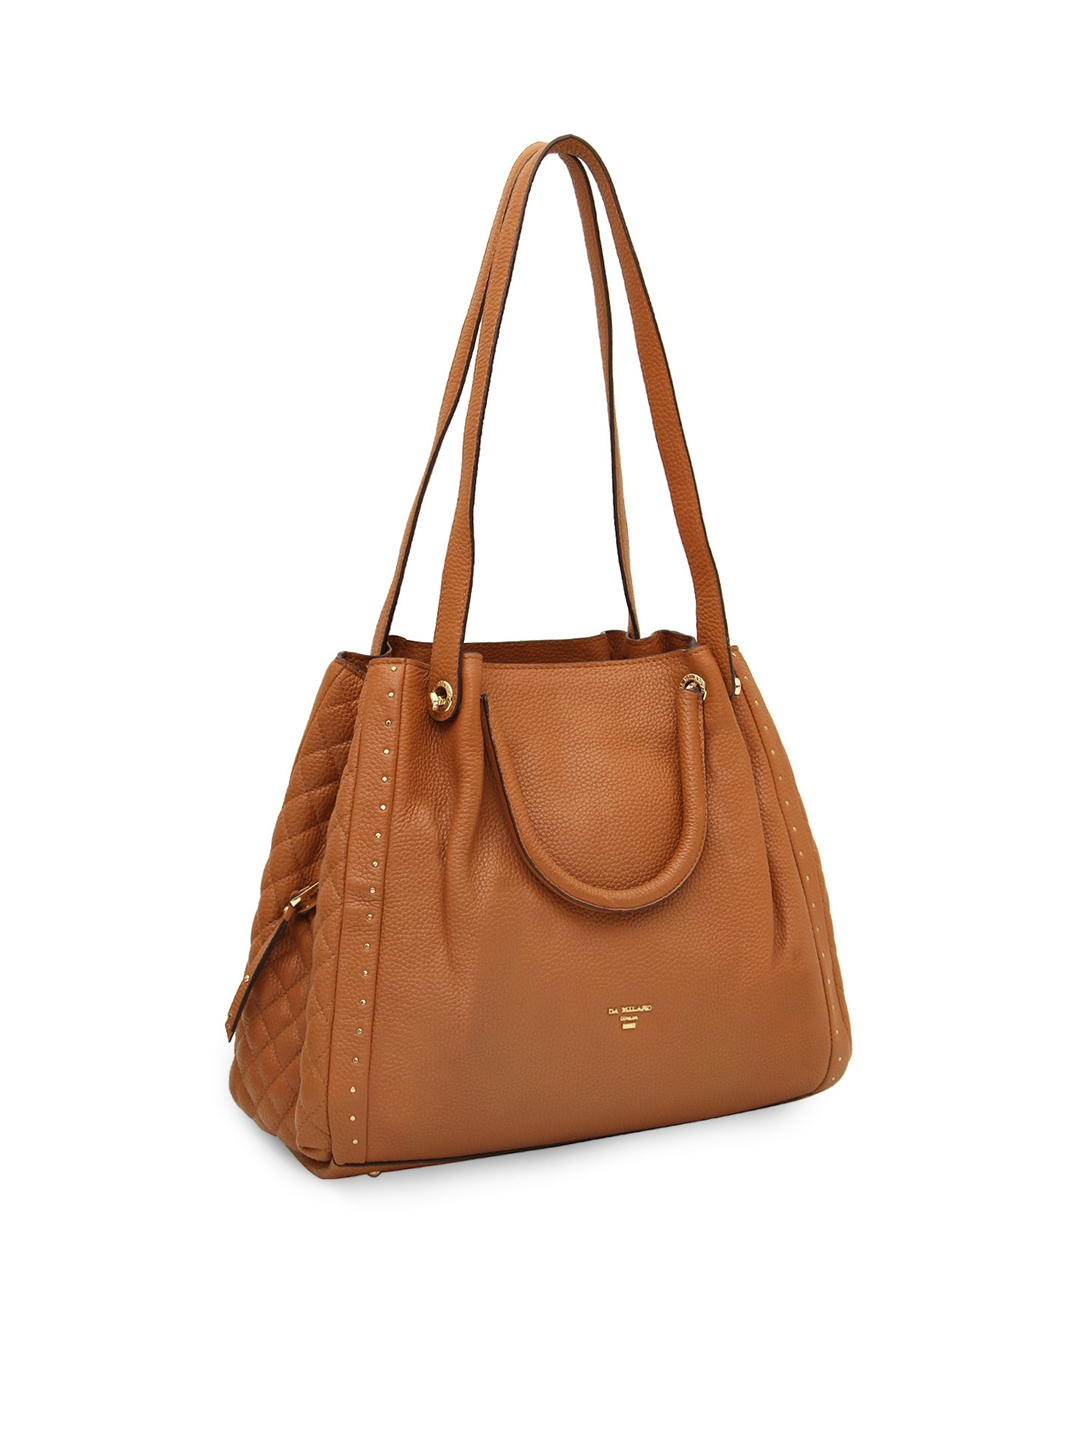 Buy Da Milano Brown Solid Leather Shoulder Bag - Handbags for Women ... f092f8b67a85b